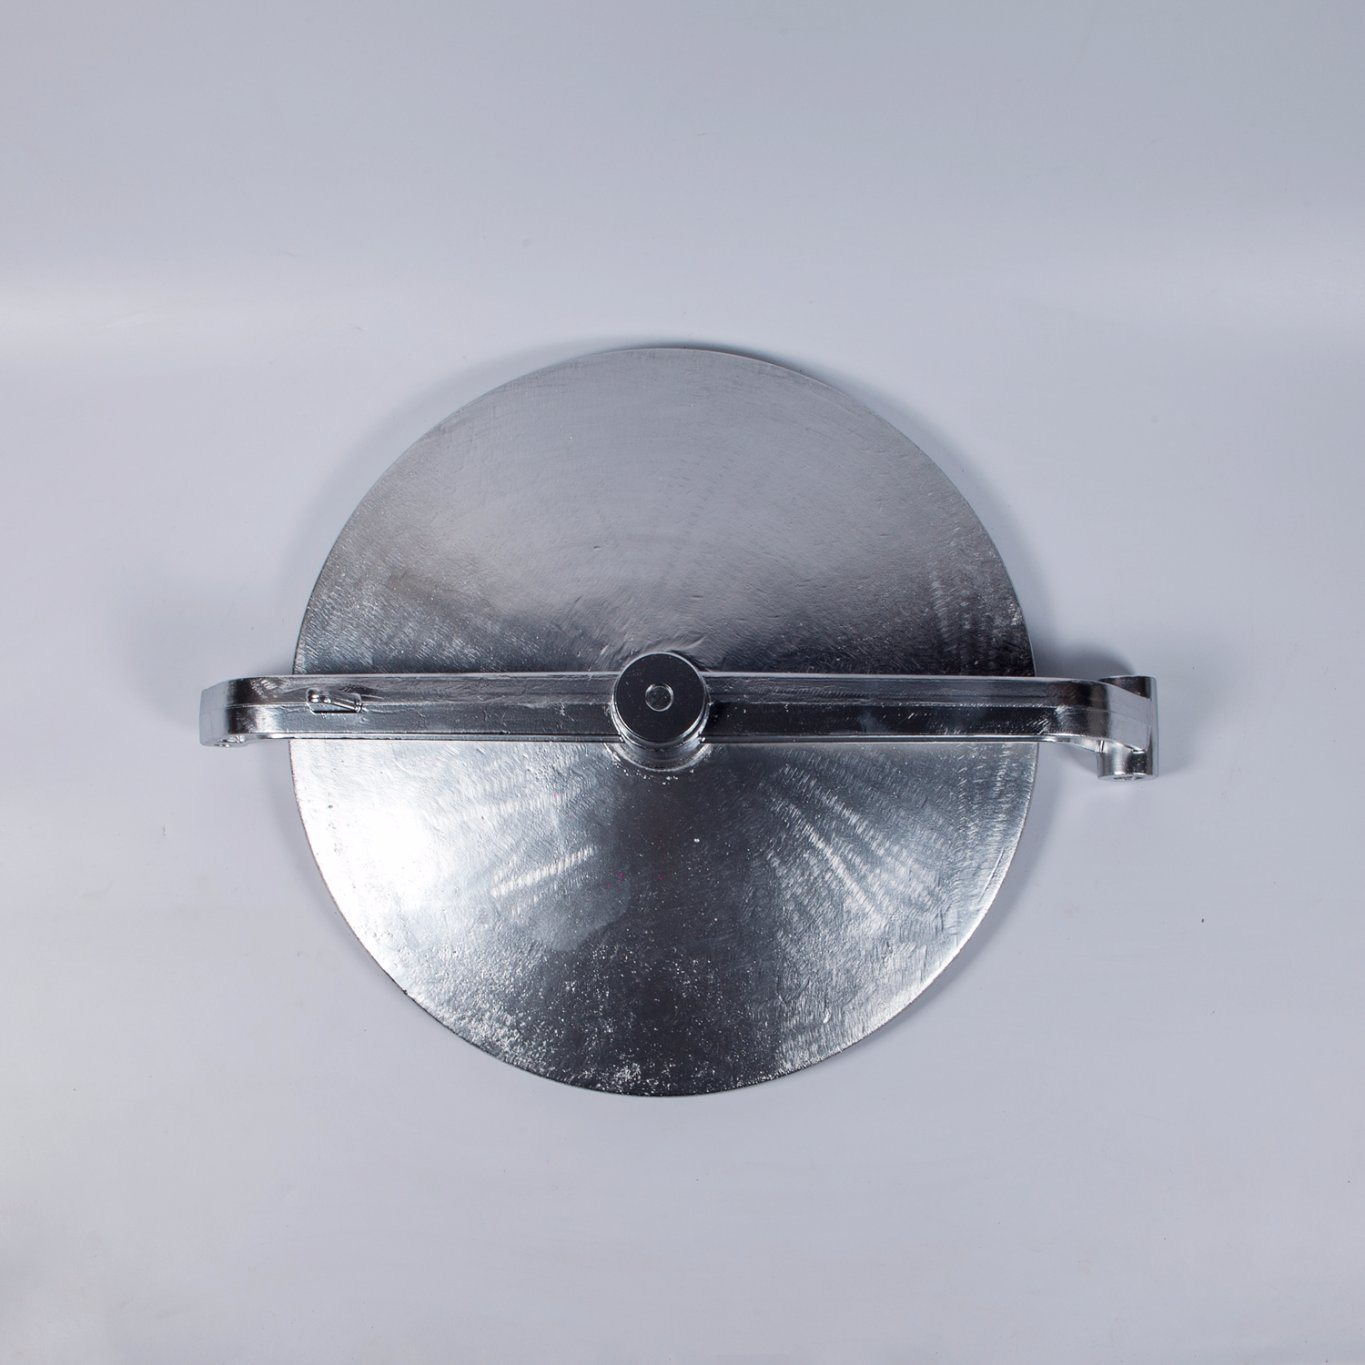 Aluminum Alloy Fire Manhole Cover for Fire Truck